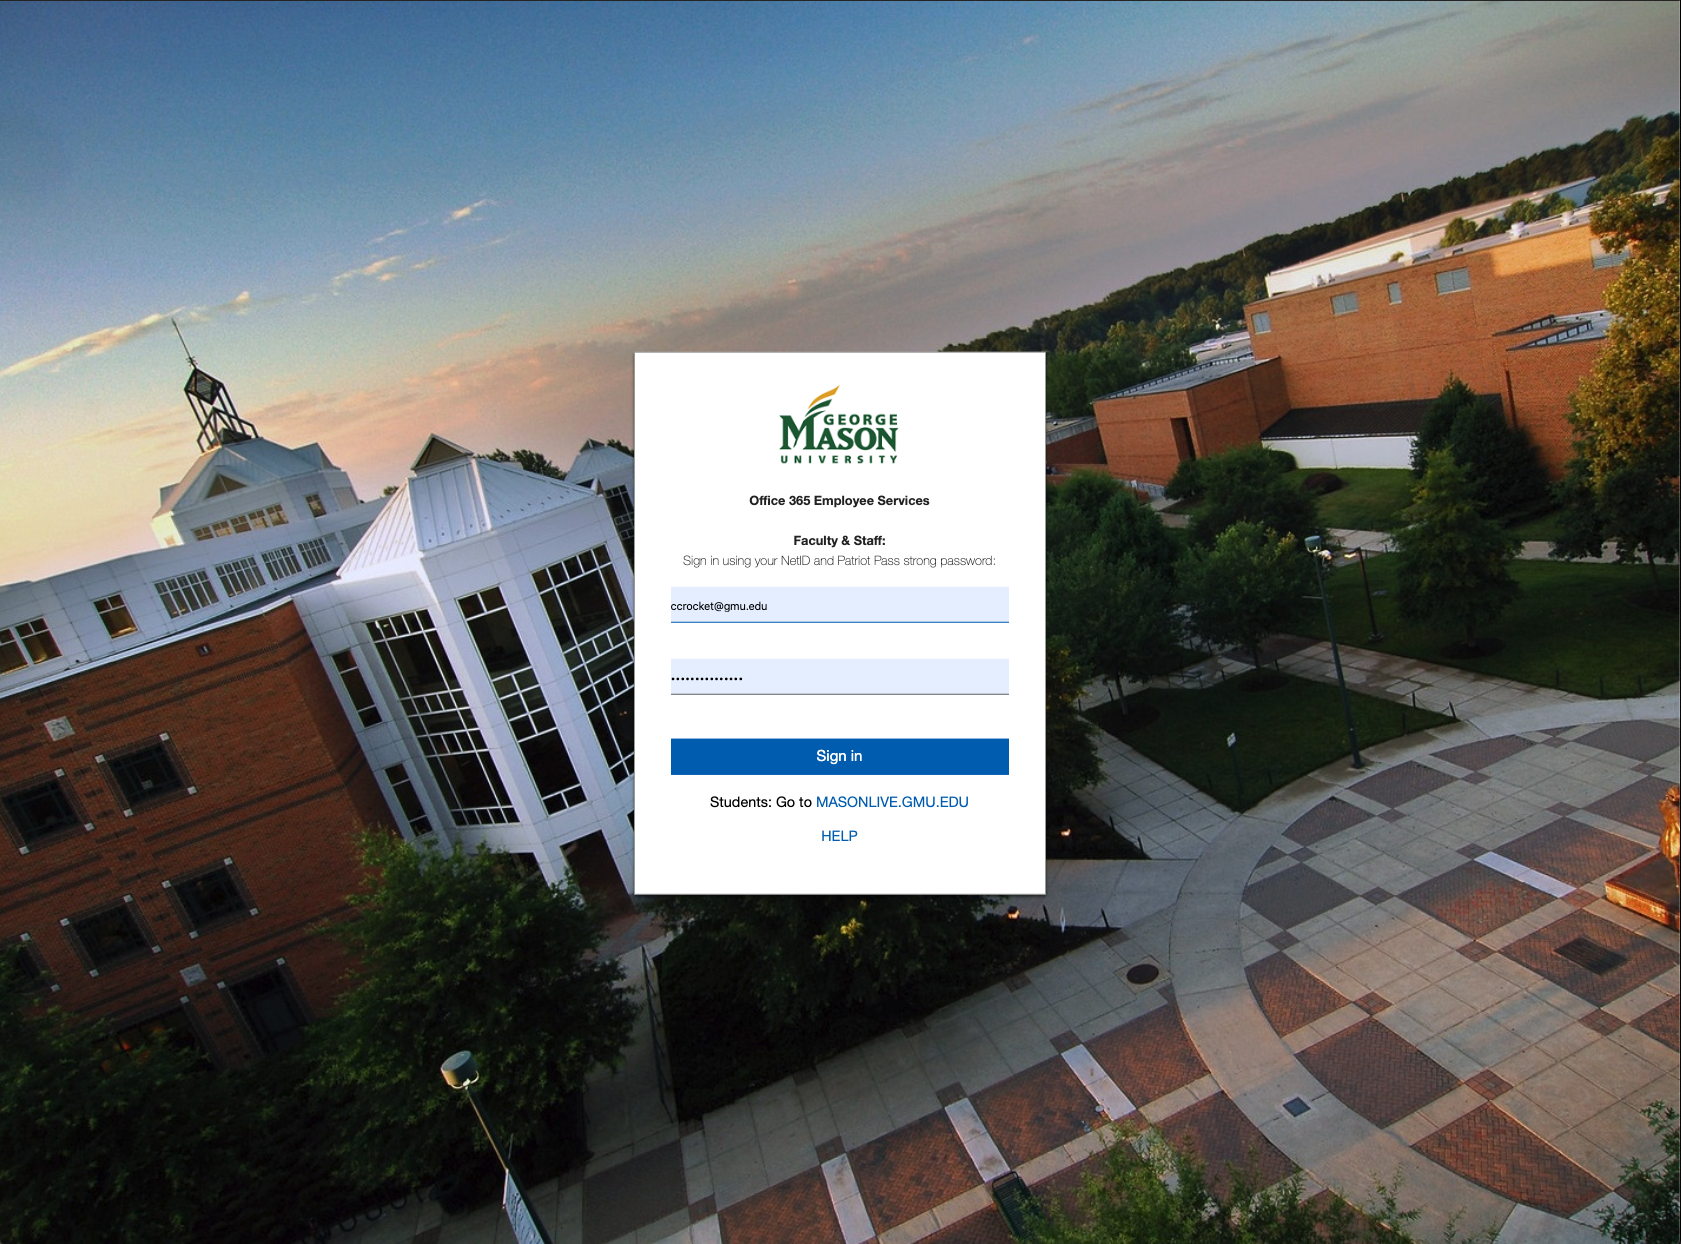 mail.gmu.edu employee log in page